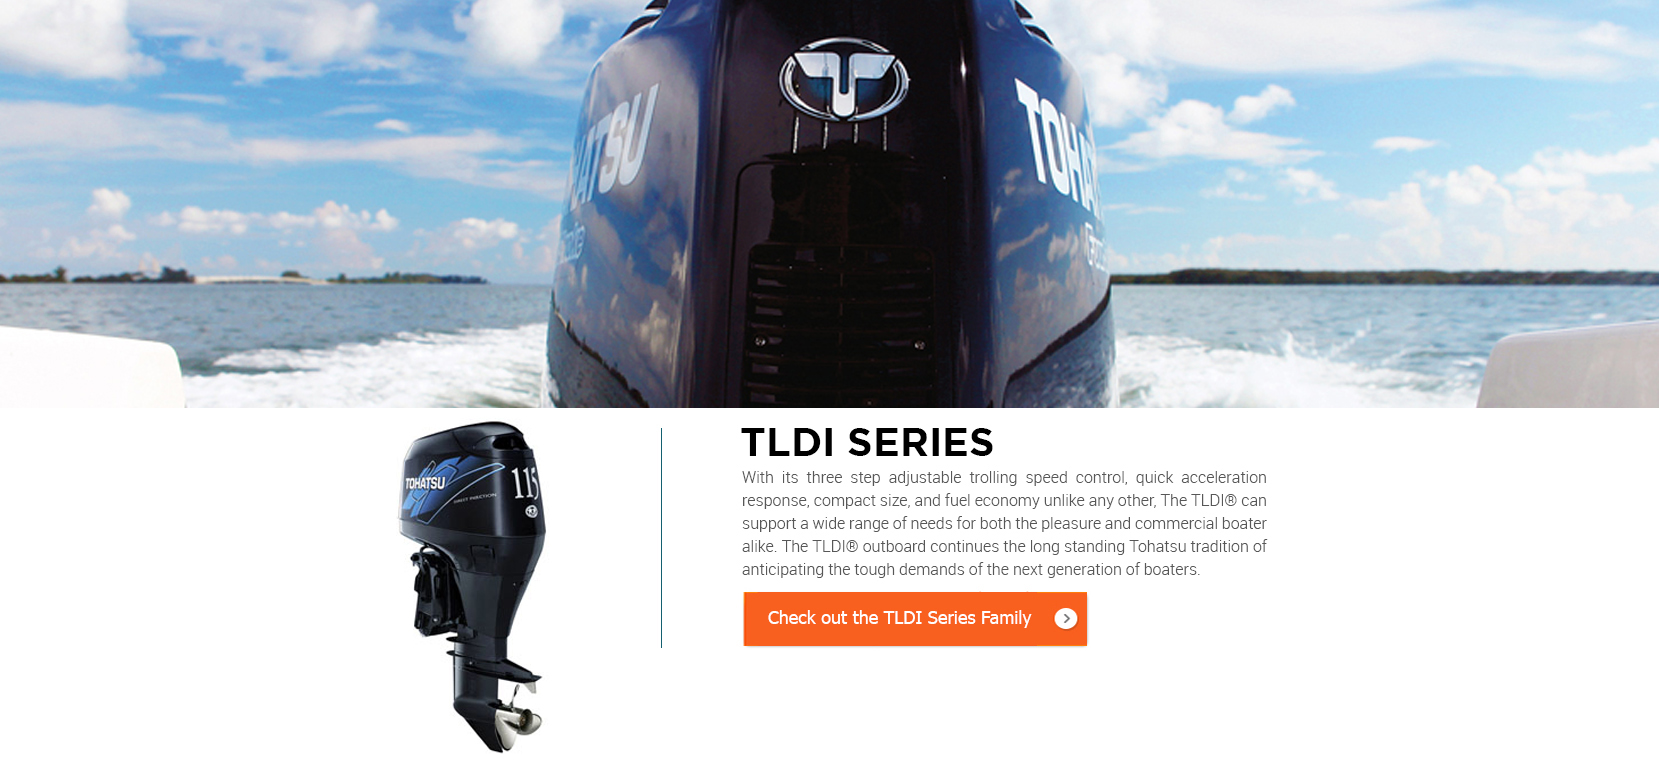 ... Tohatsu outboard motor engines headquarters for South Florida. We've been helping boaters in Miami, Fort Lauderdale, Dania Beach and Palm Beach stay on ...